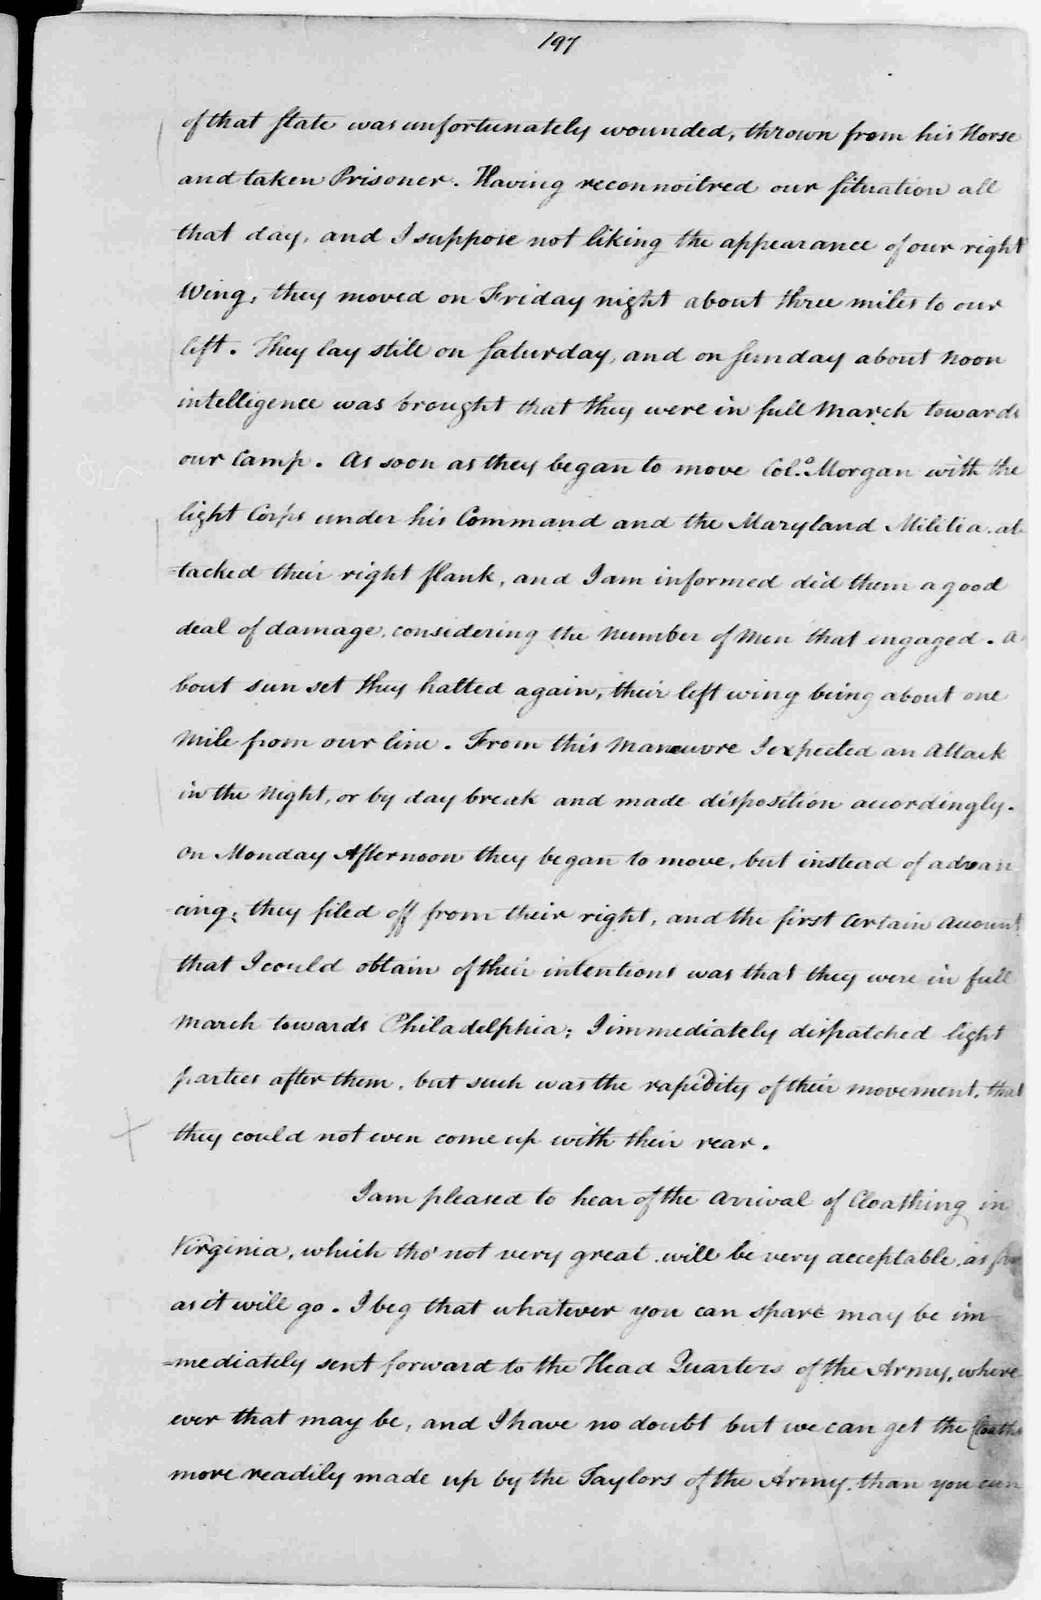 George Washington Papers, Series 3, Varick Transcripts, 1775-1785, Subseries 3C, Civil Officials and Private Citizens, Subseries 3C, Letterbook 2: Jan. 2, 1777 - June 20, 1779